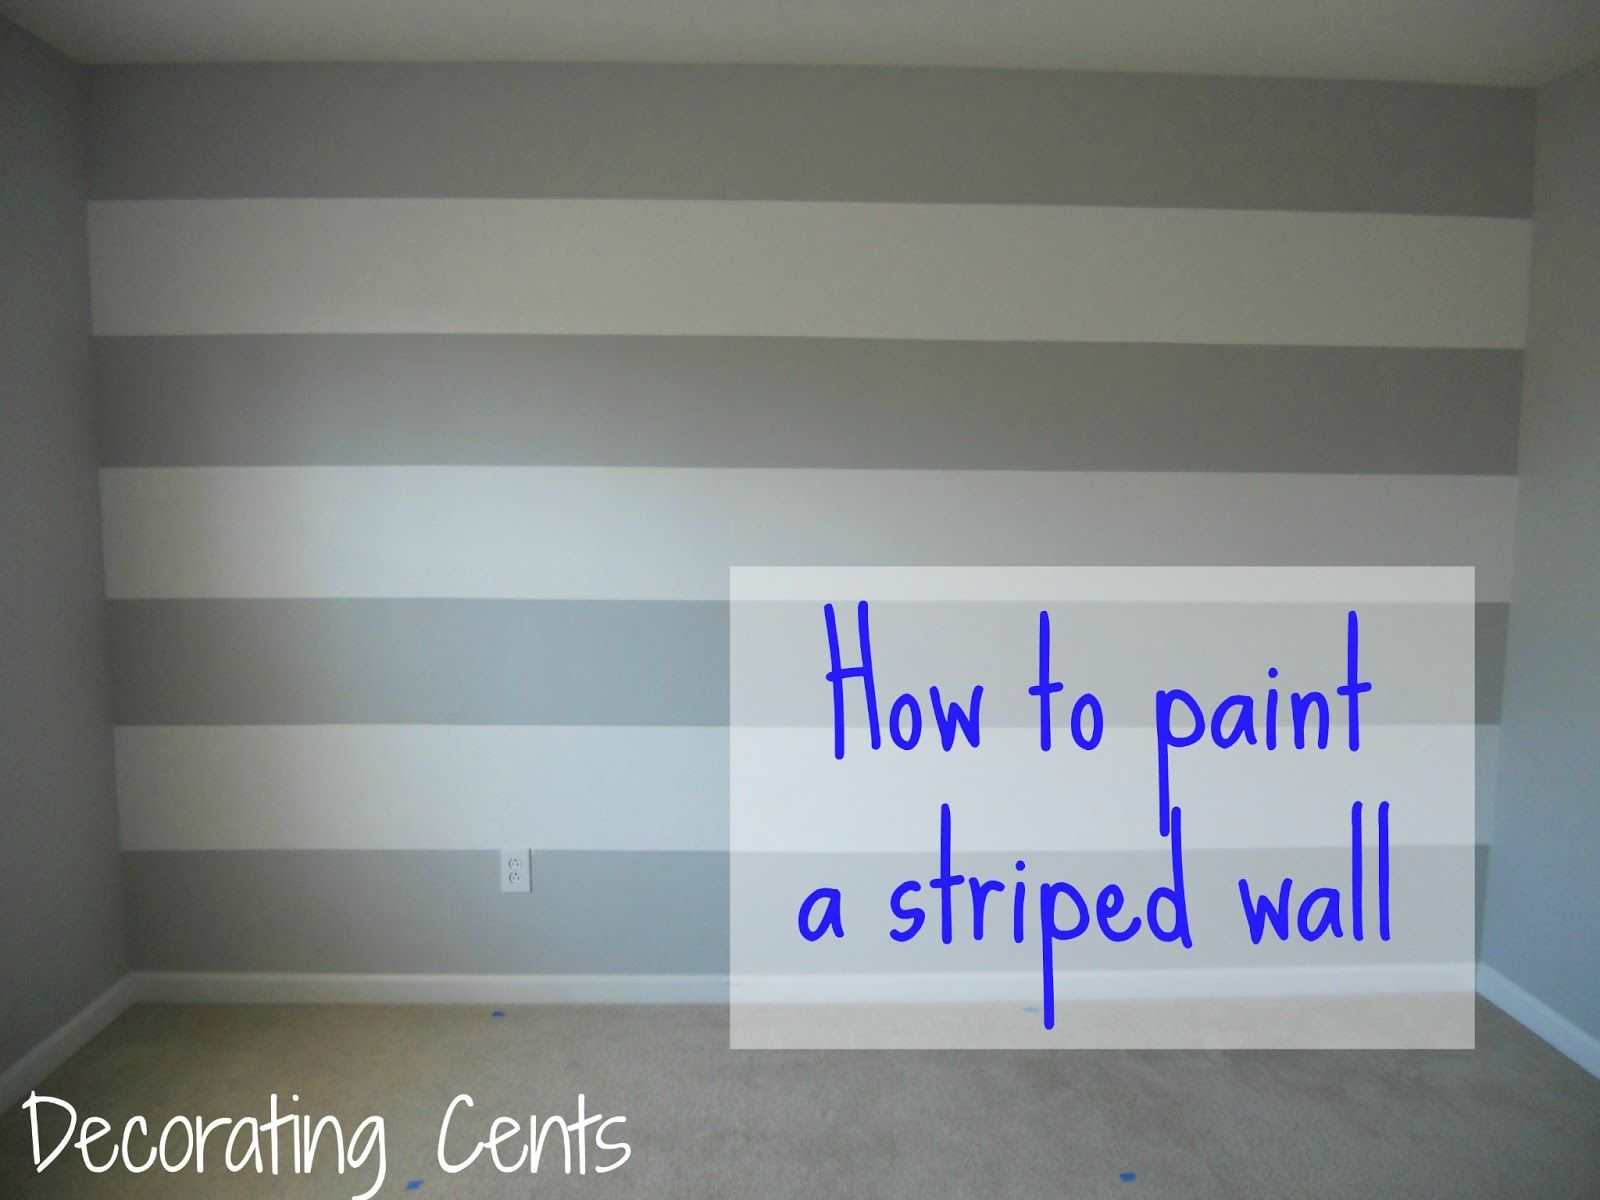 Decorating Cents Painting A Striped Wall For The Home